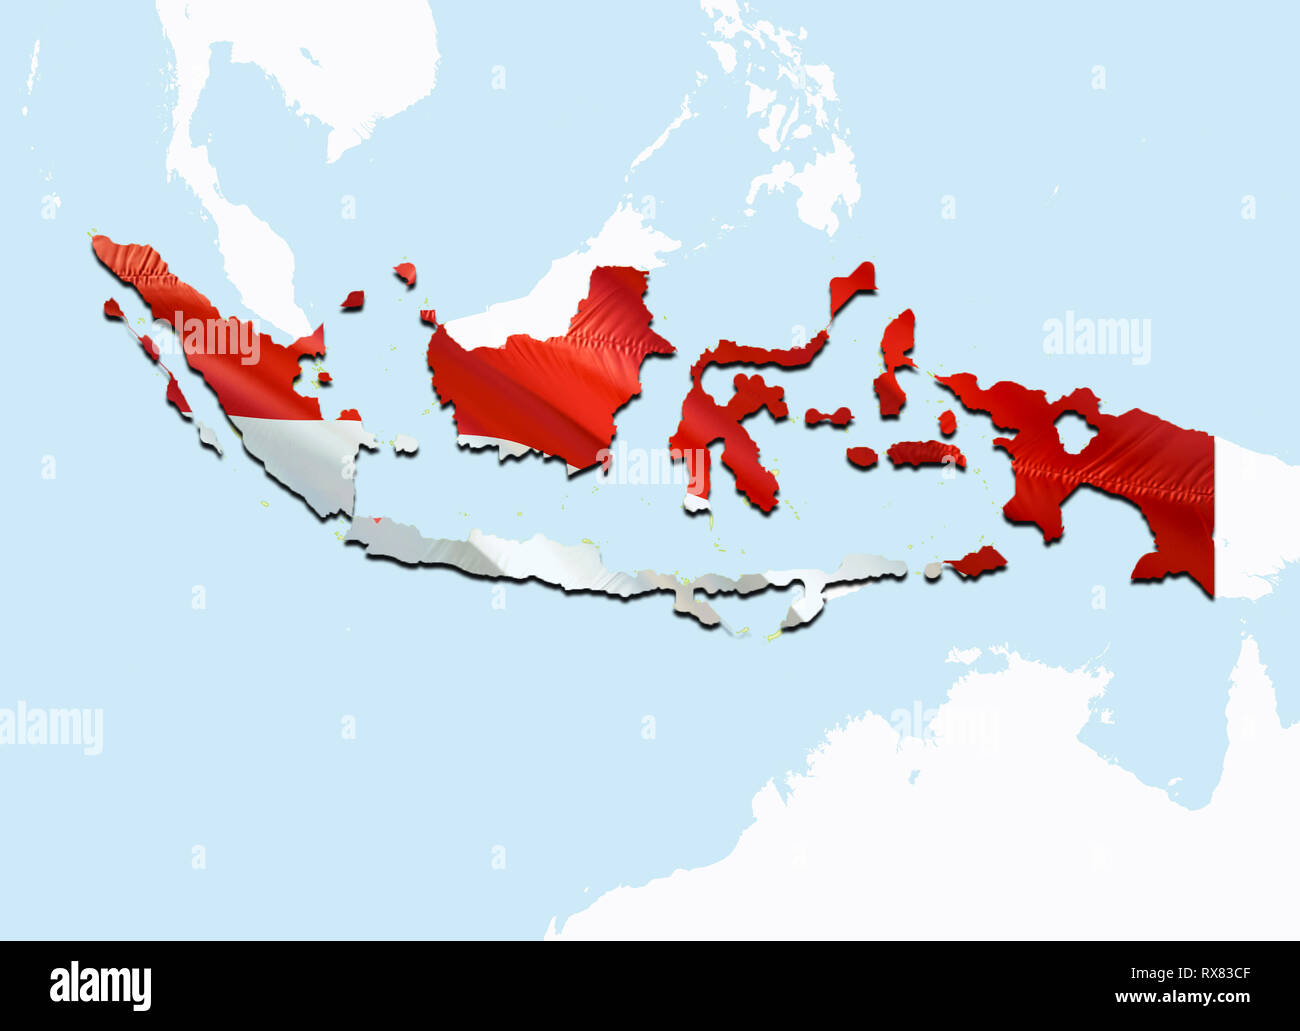 Indonesia Map Stock Photos & Indonesia Map Stock Images - Alamy